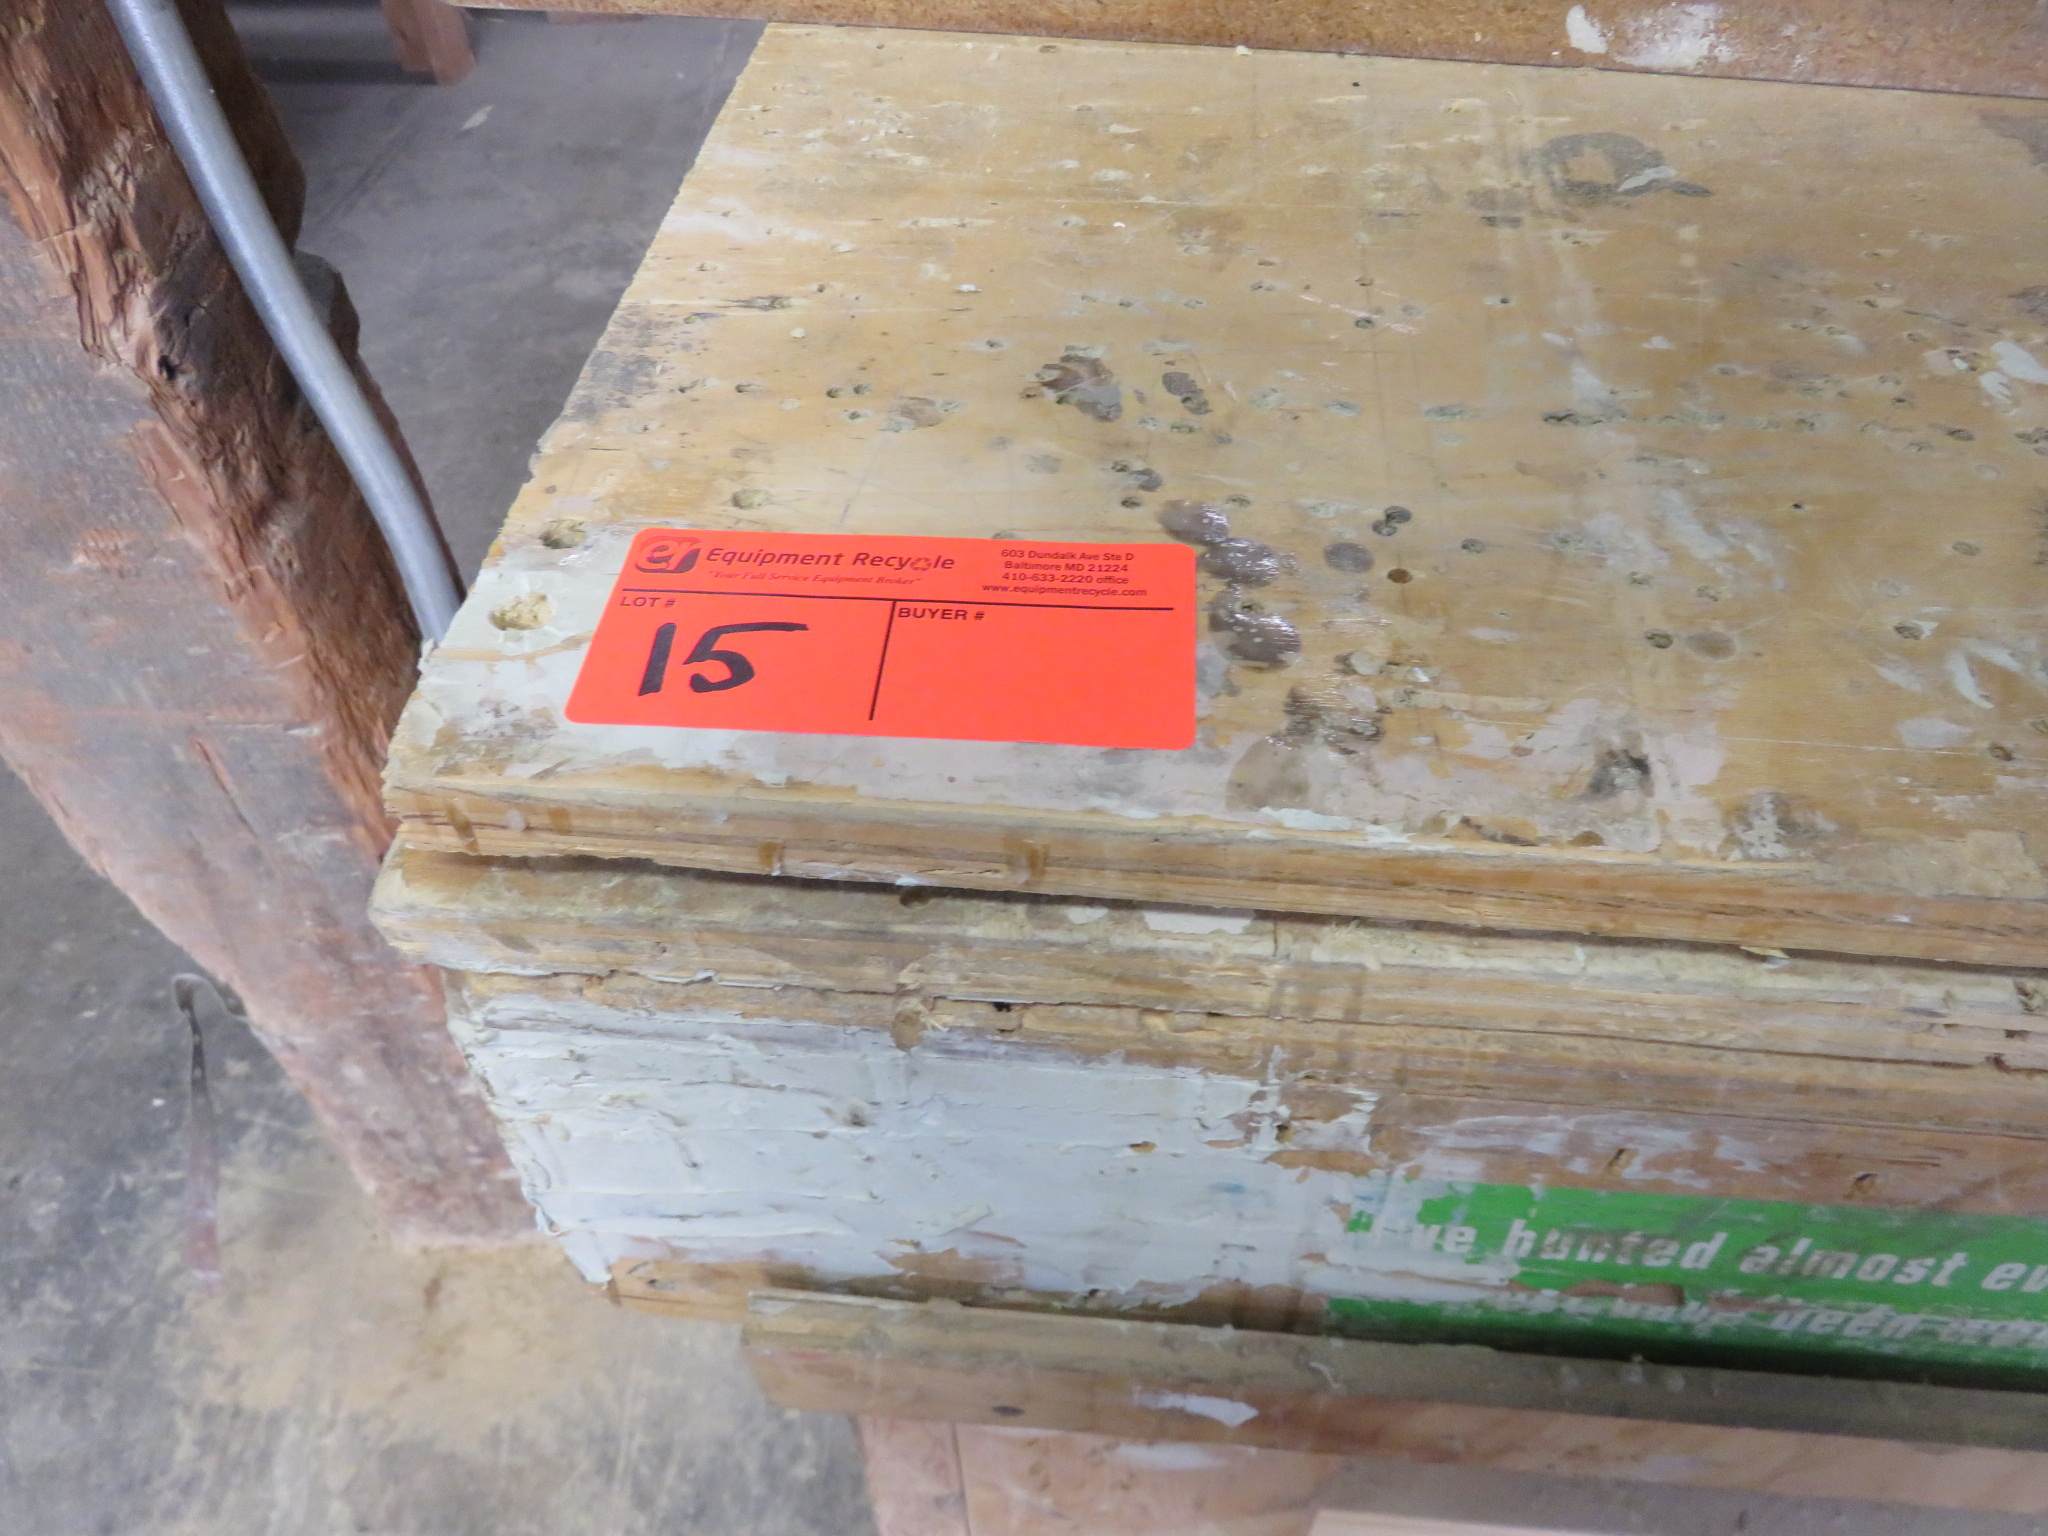 """Heavy Duty Wooden Work Tables Lot of 3 approx 96""""x 48""""x 36, 38""""x 32""""x 34"""" 60""""x 28""""x 36"""" - Image 4 of 4"""